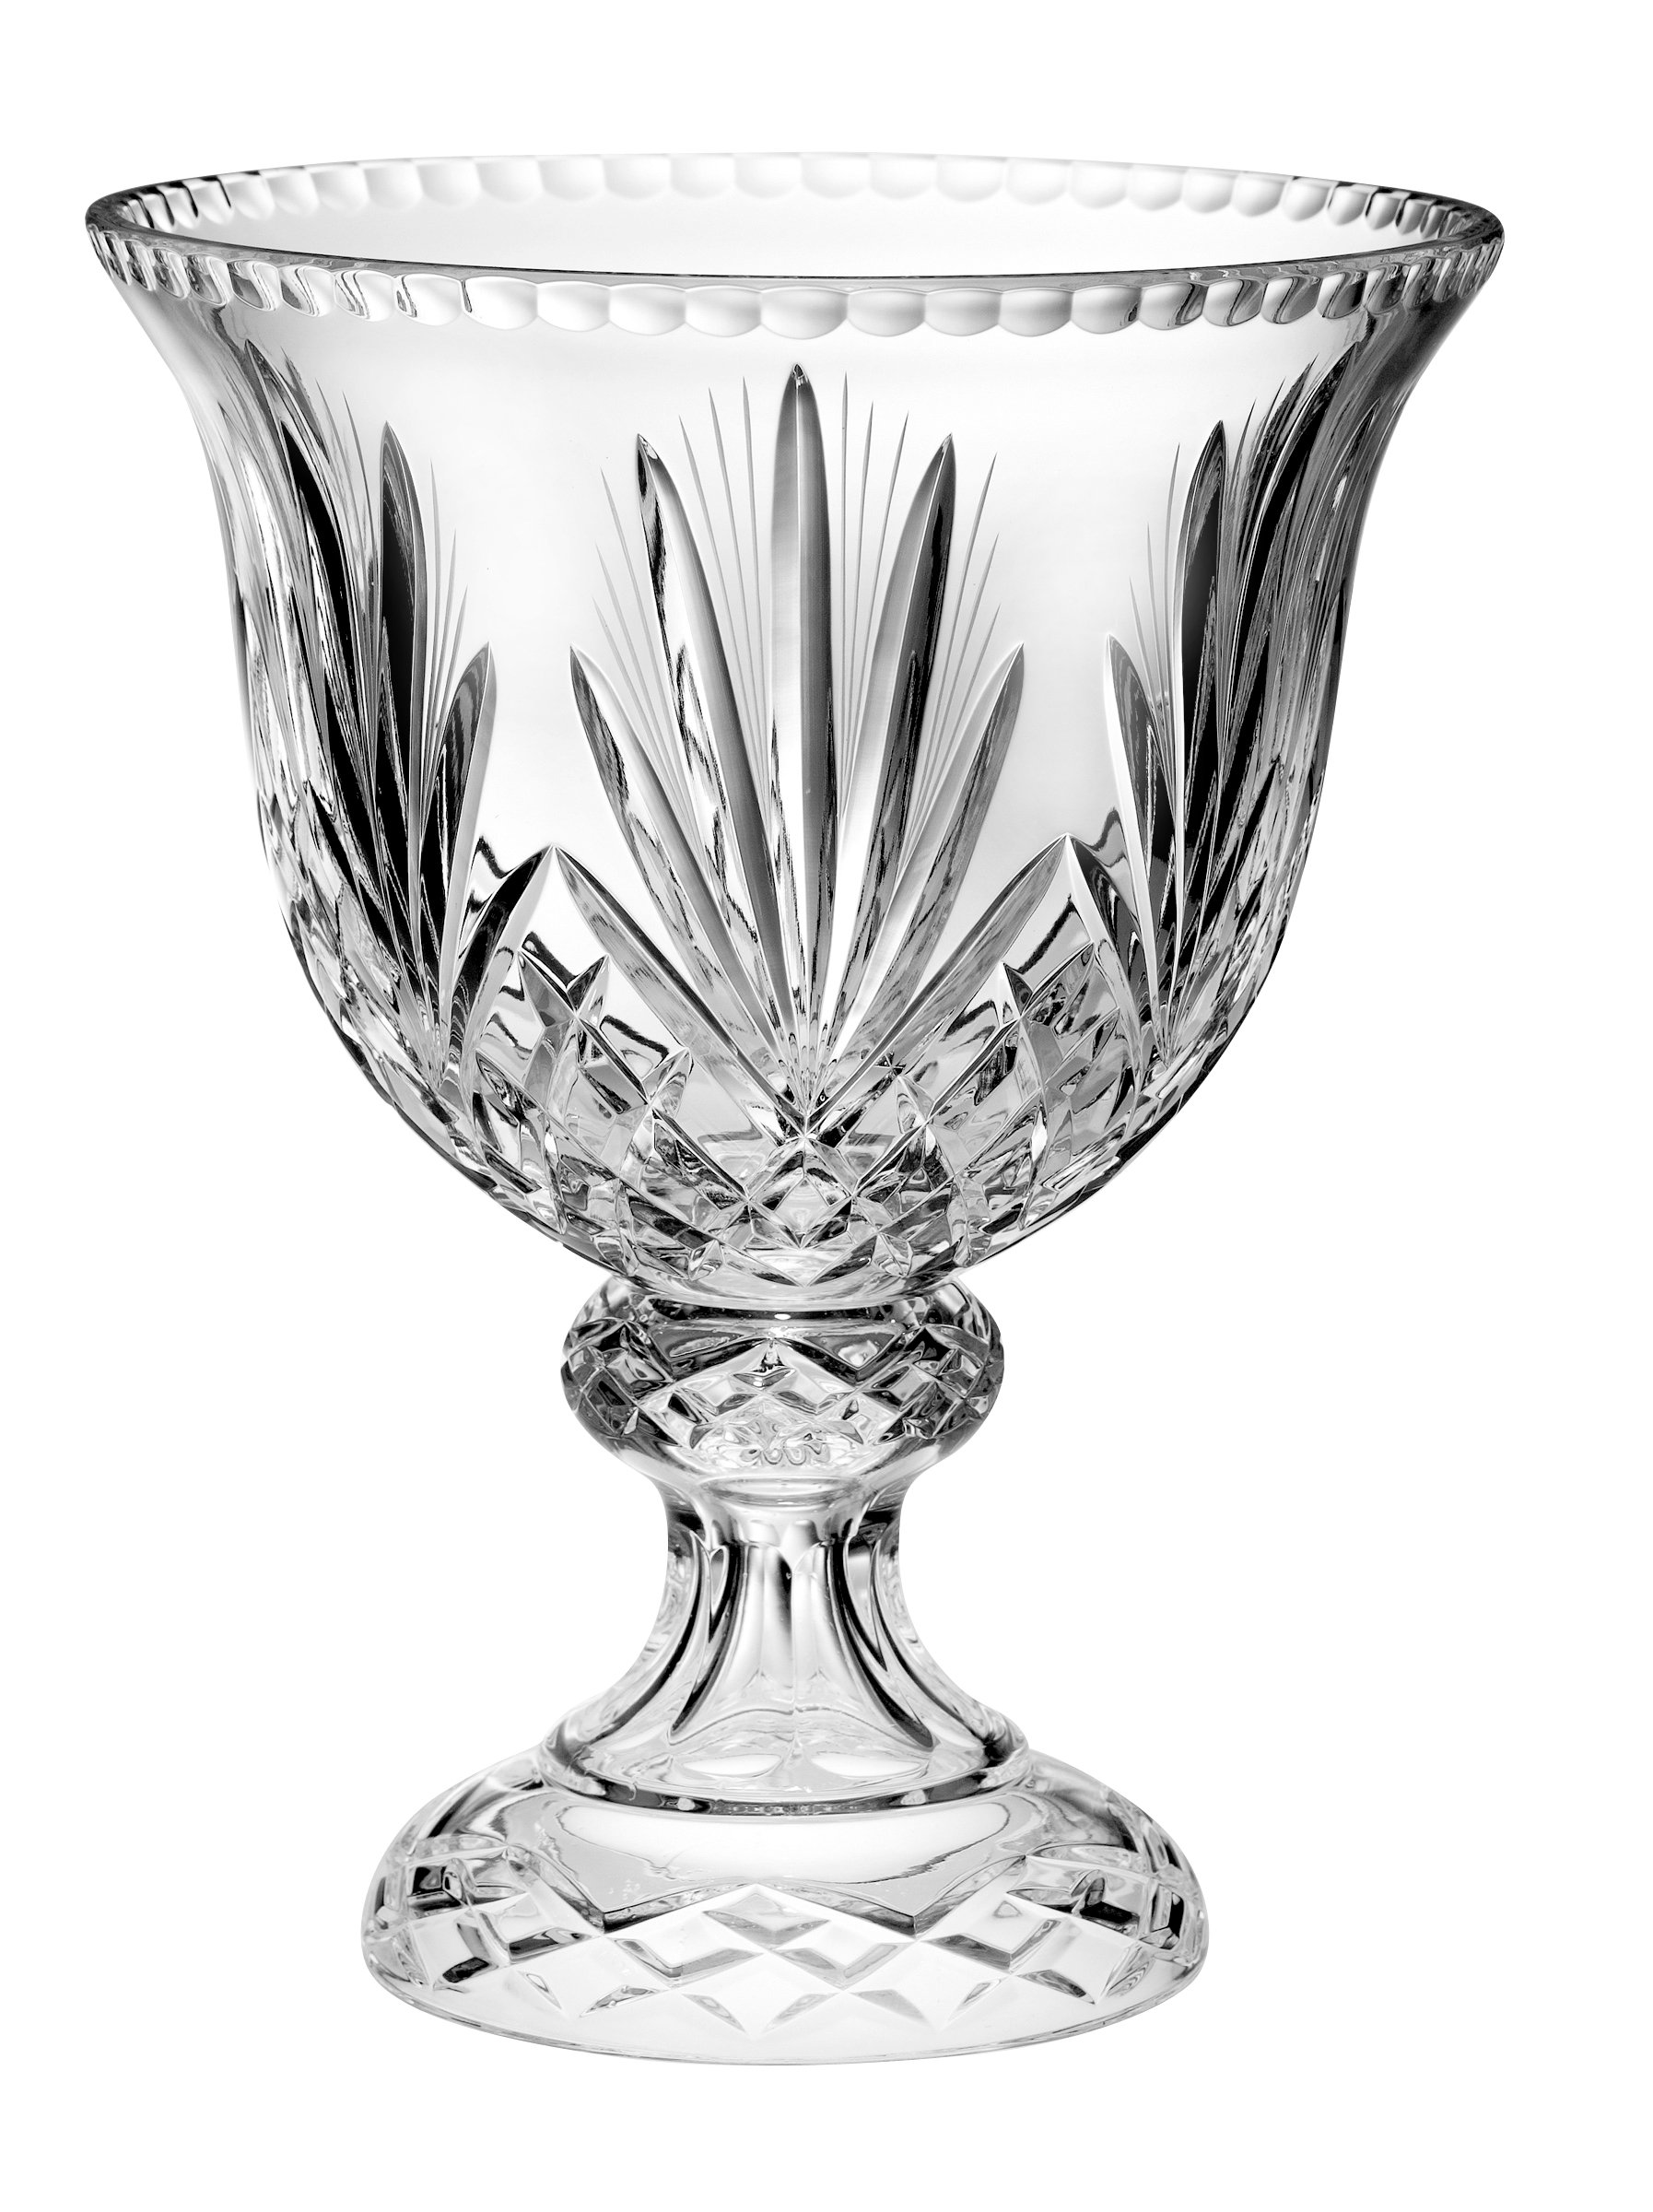 Barski - Hand Cut - Mouth Blown - Crystal - Footed Centerpiece - Bowl - 12''D - Made in Europe